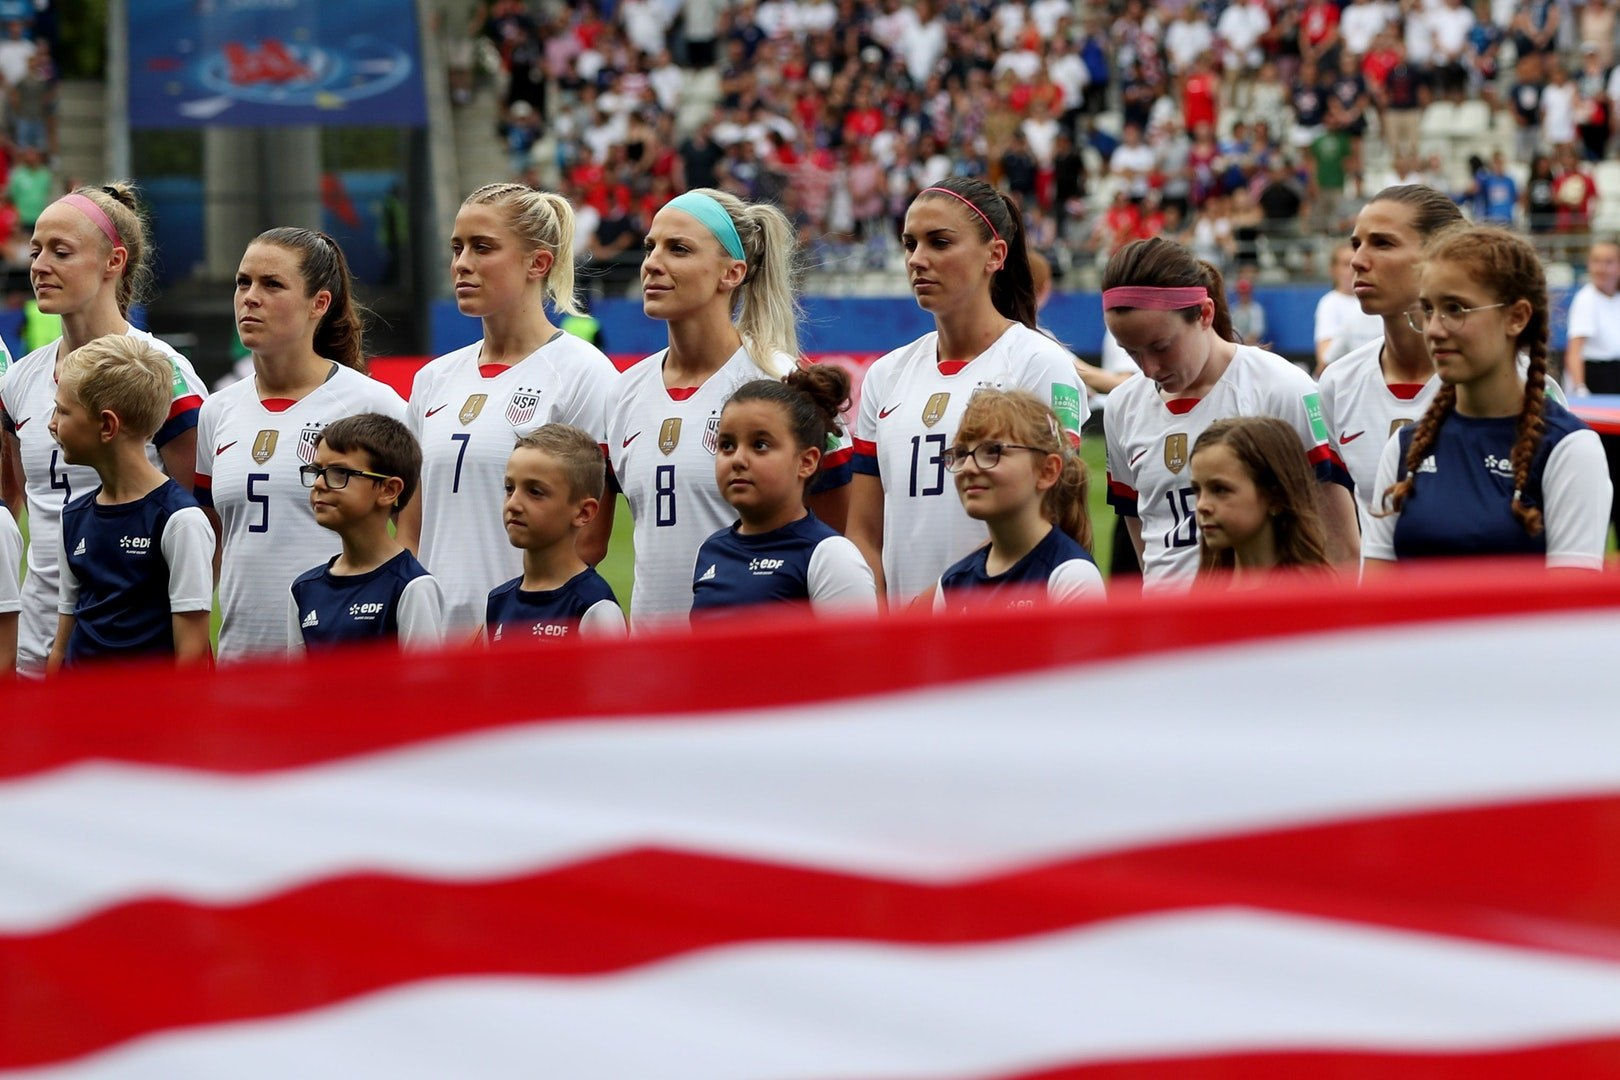 Telemundo Deportes Spotlights Strong Women in Women's World Cup Coverage